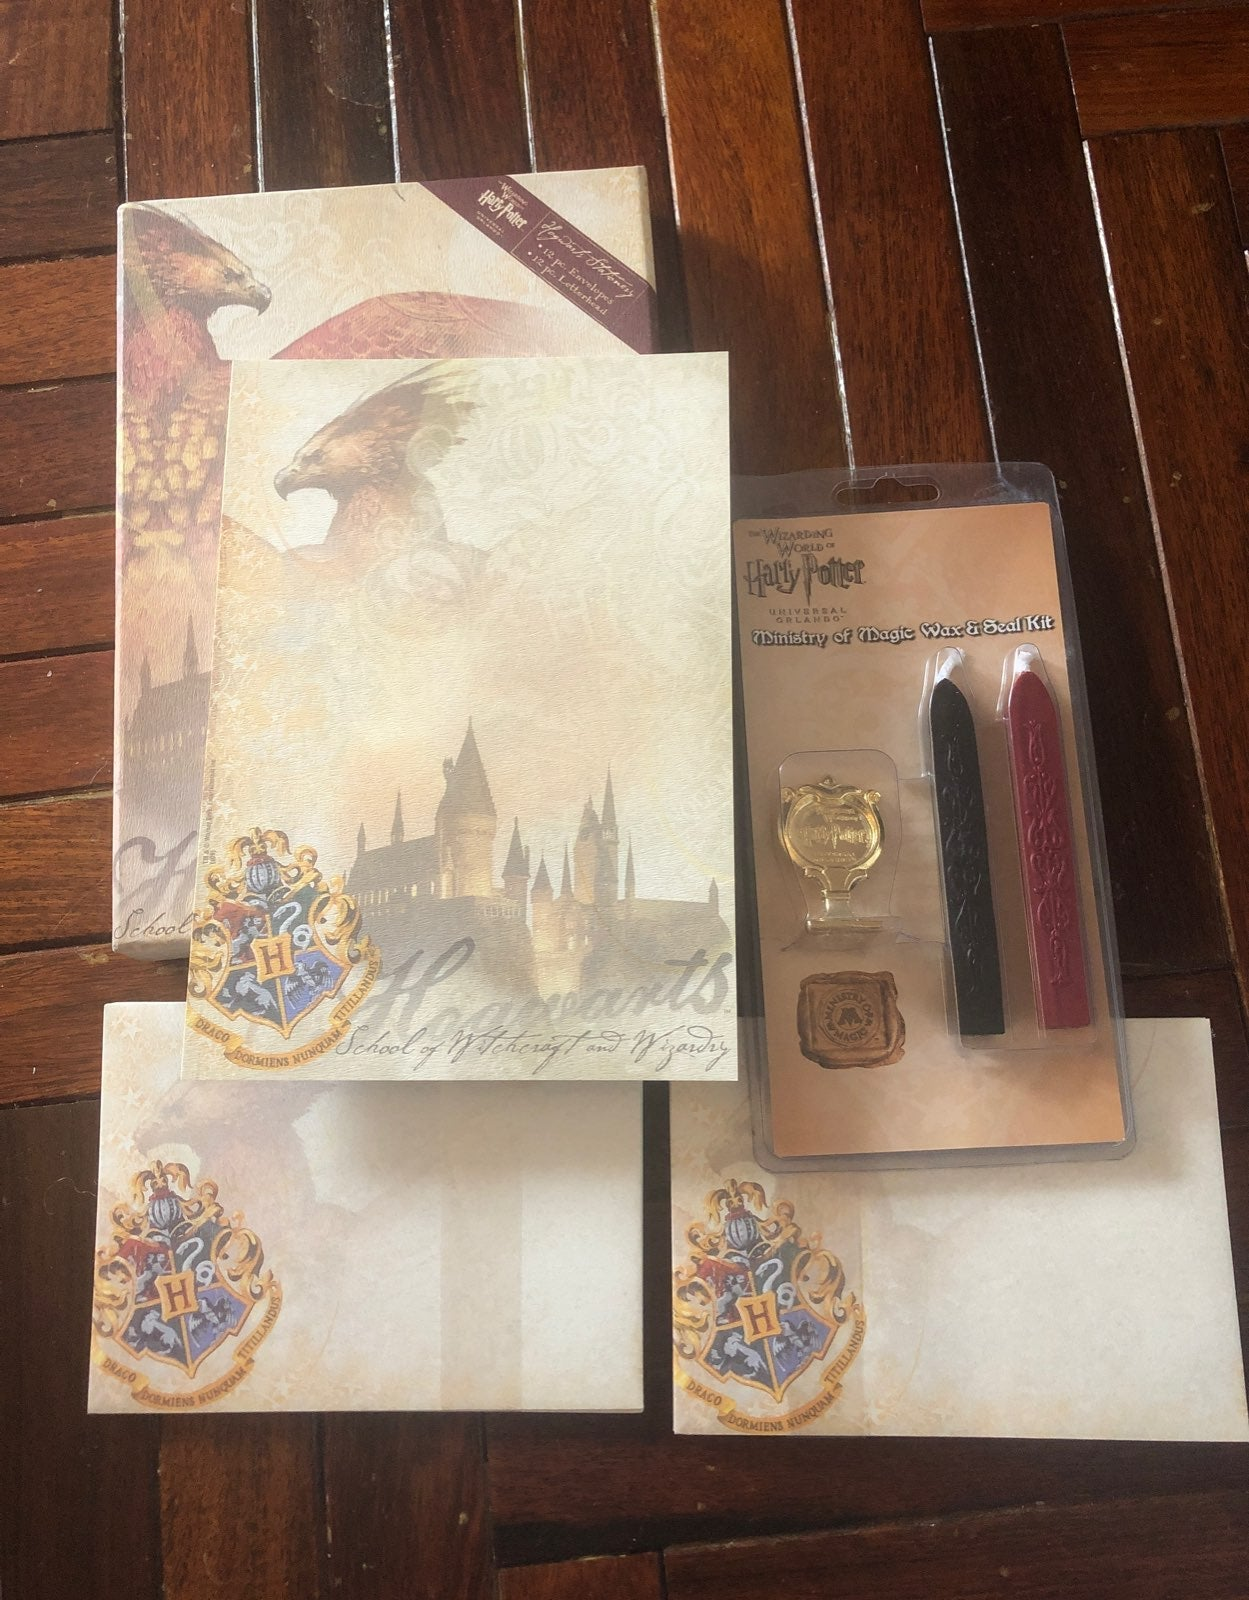 Harry Potter Stamp and Stationary set!